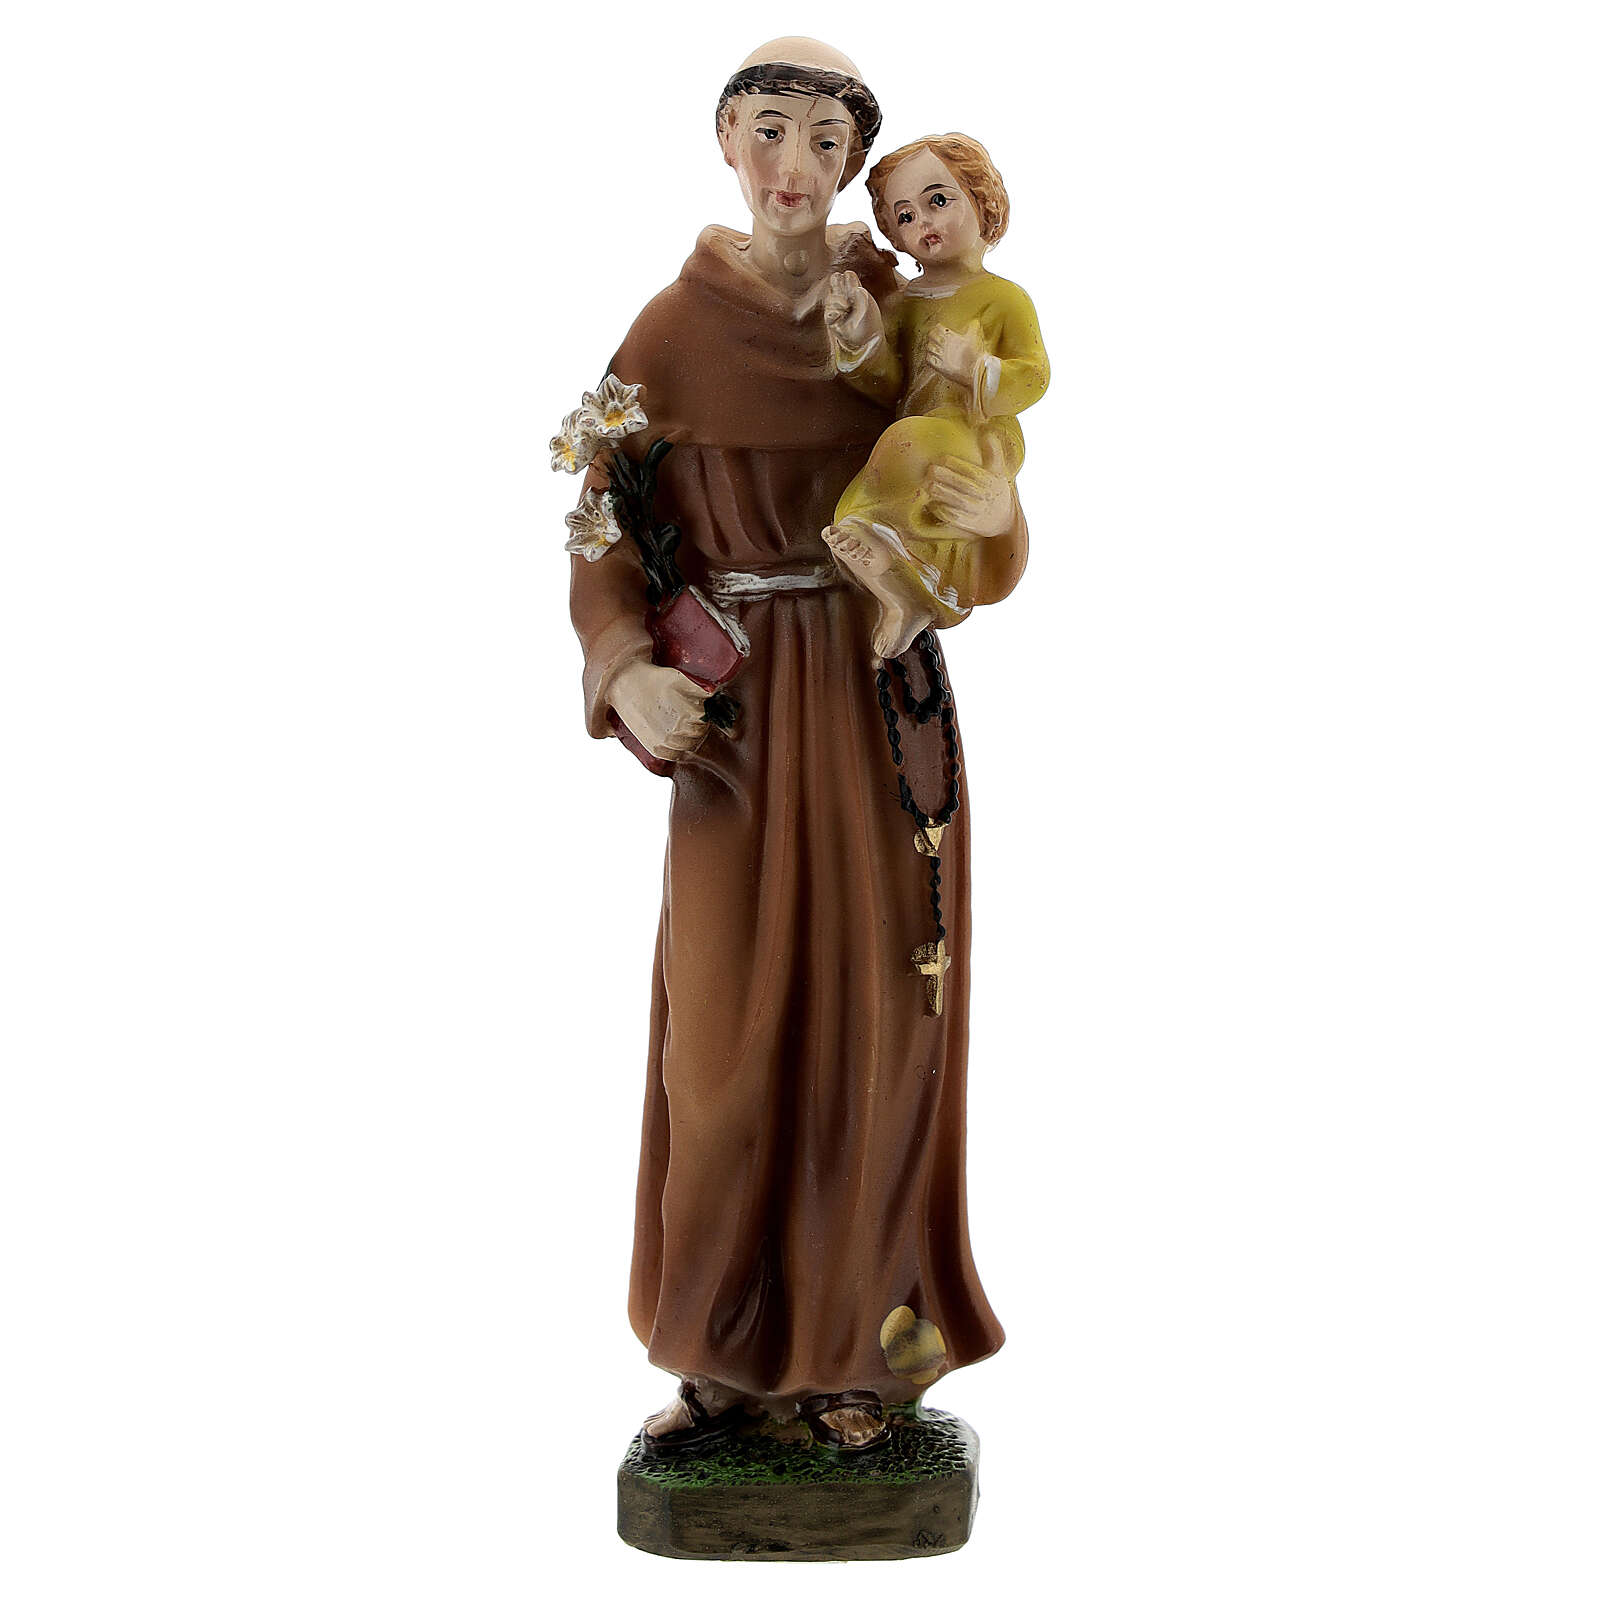 Statuette of St. Anthony with Baby resin yellow clothes 12 cm 4